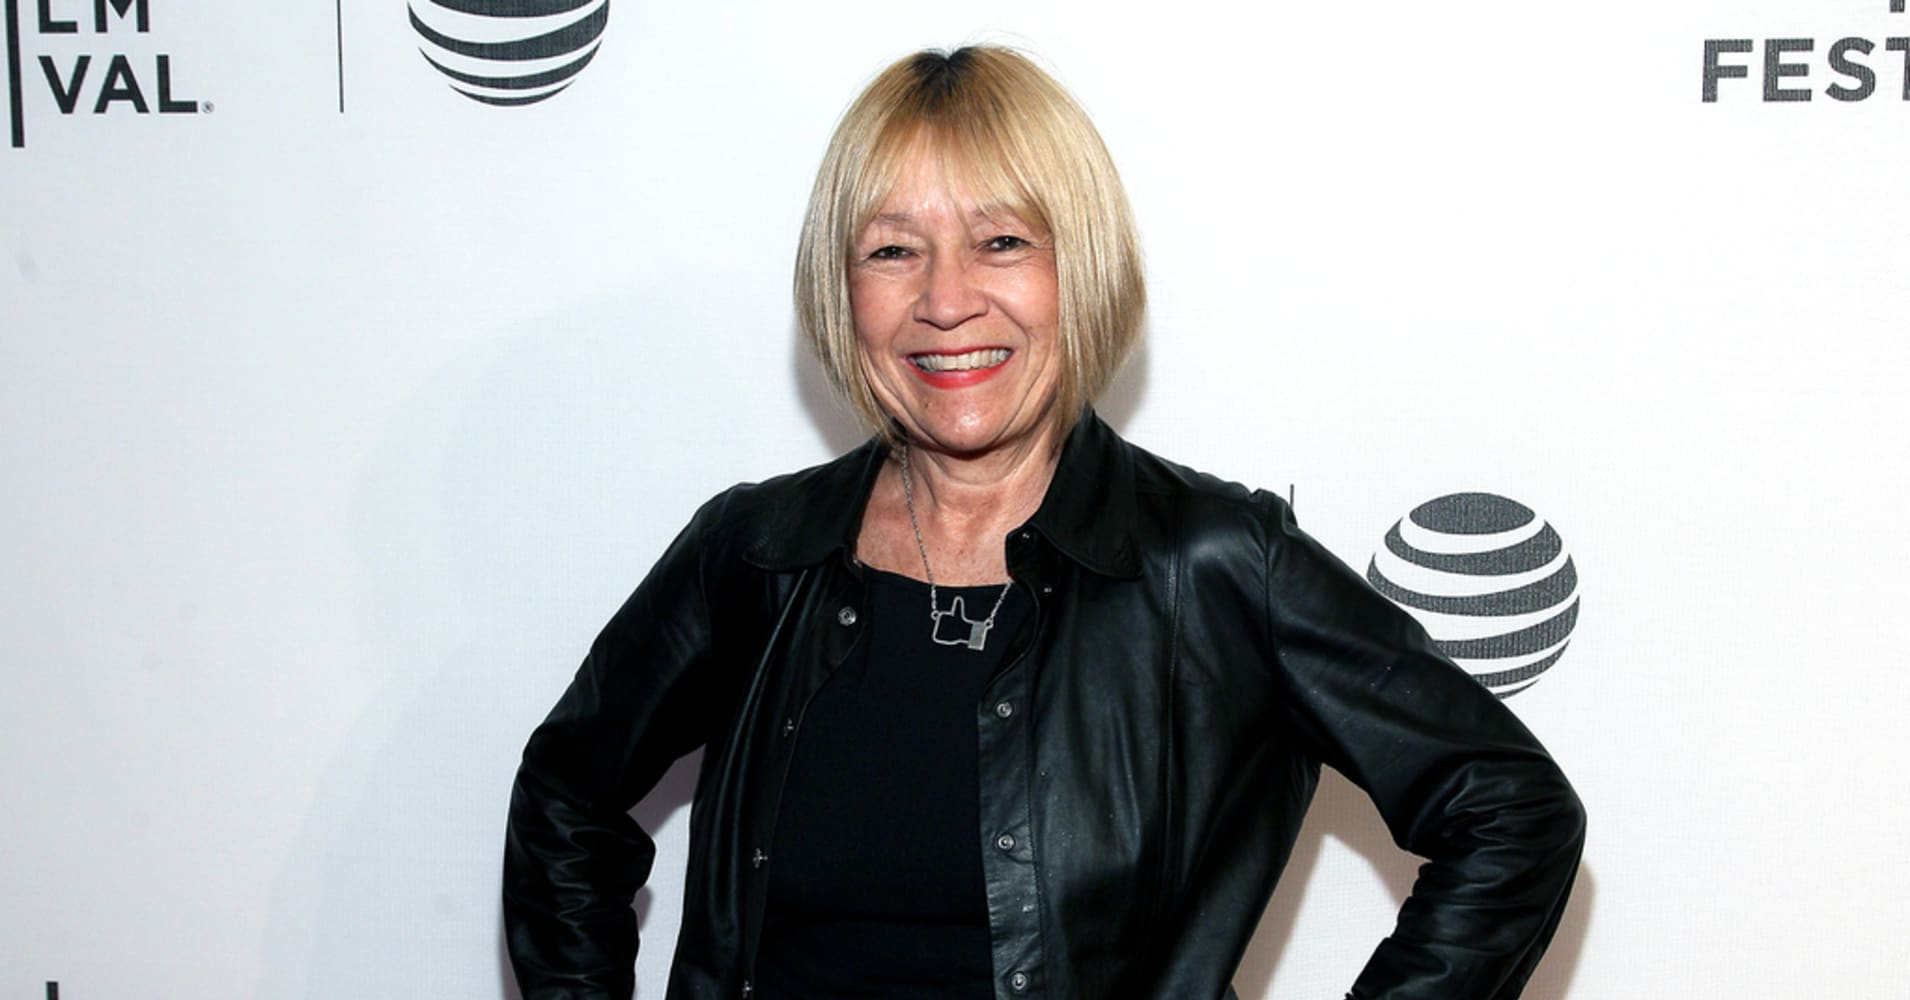 Cindy Gallop attends the Tribeca Talks Daring Women Summit at Festival Hub on April 20, 2016 in New York City.